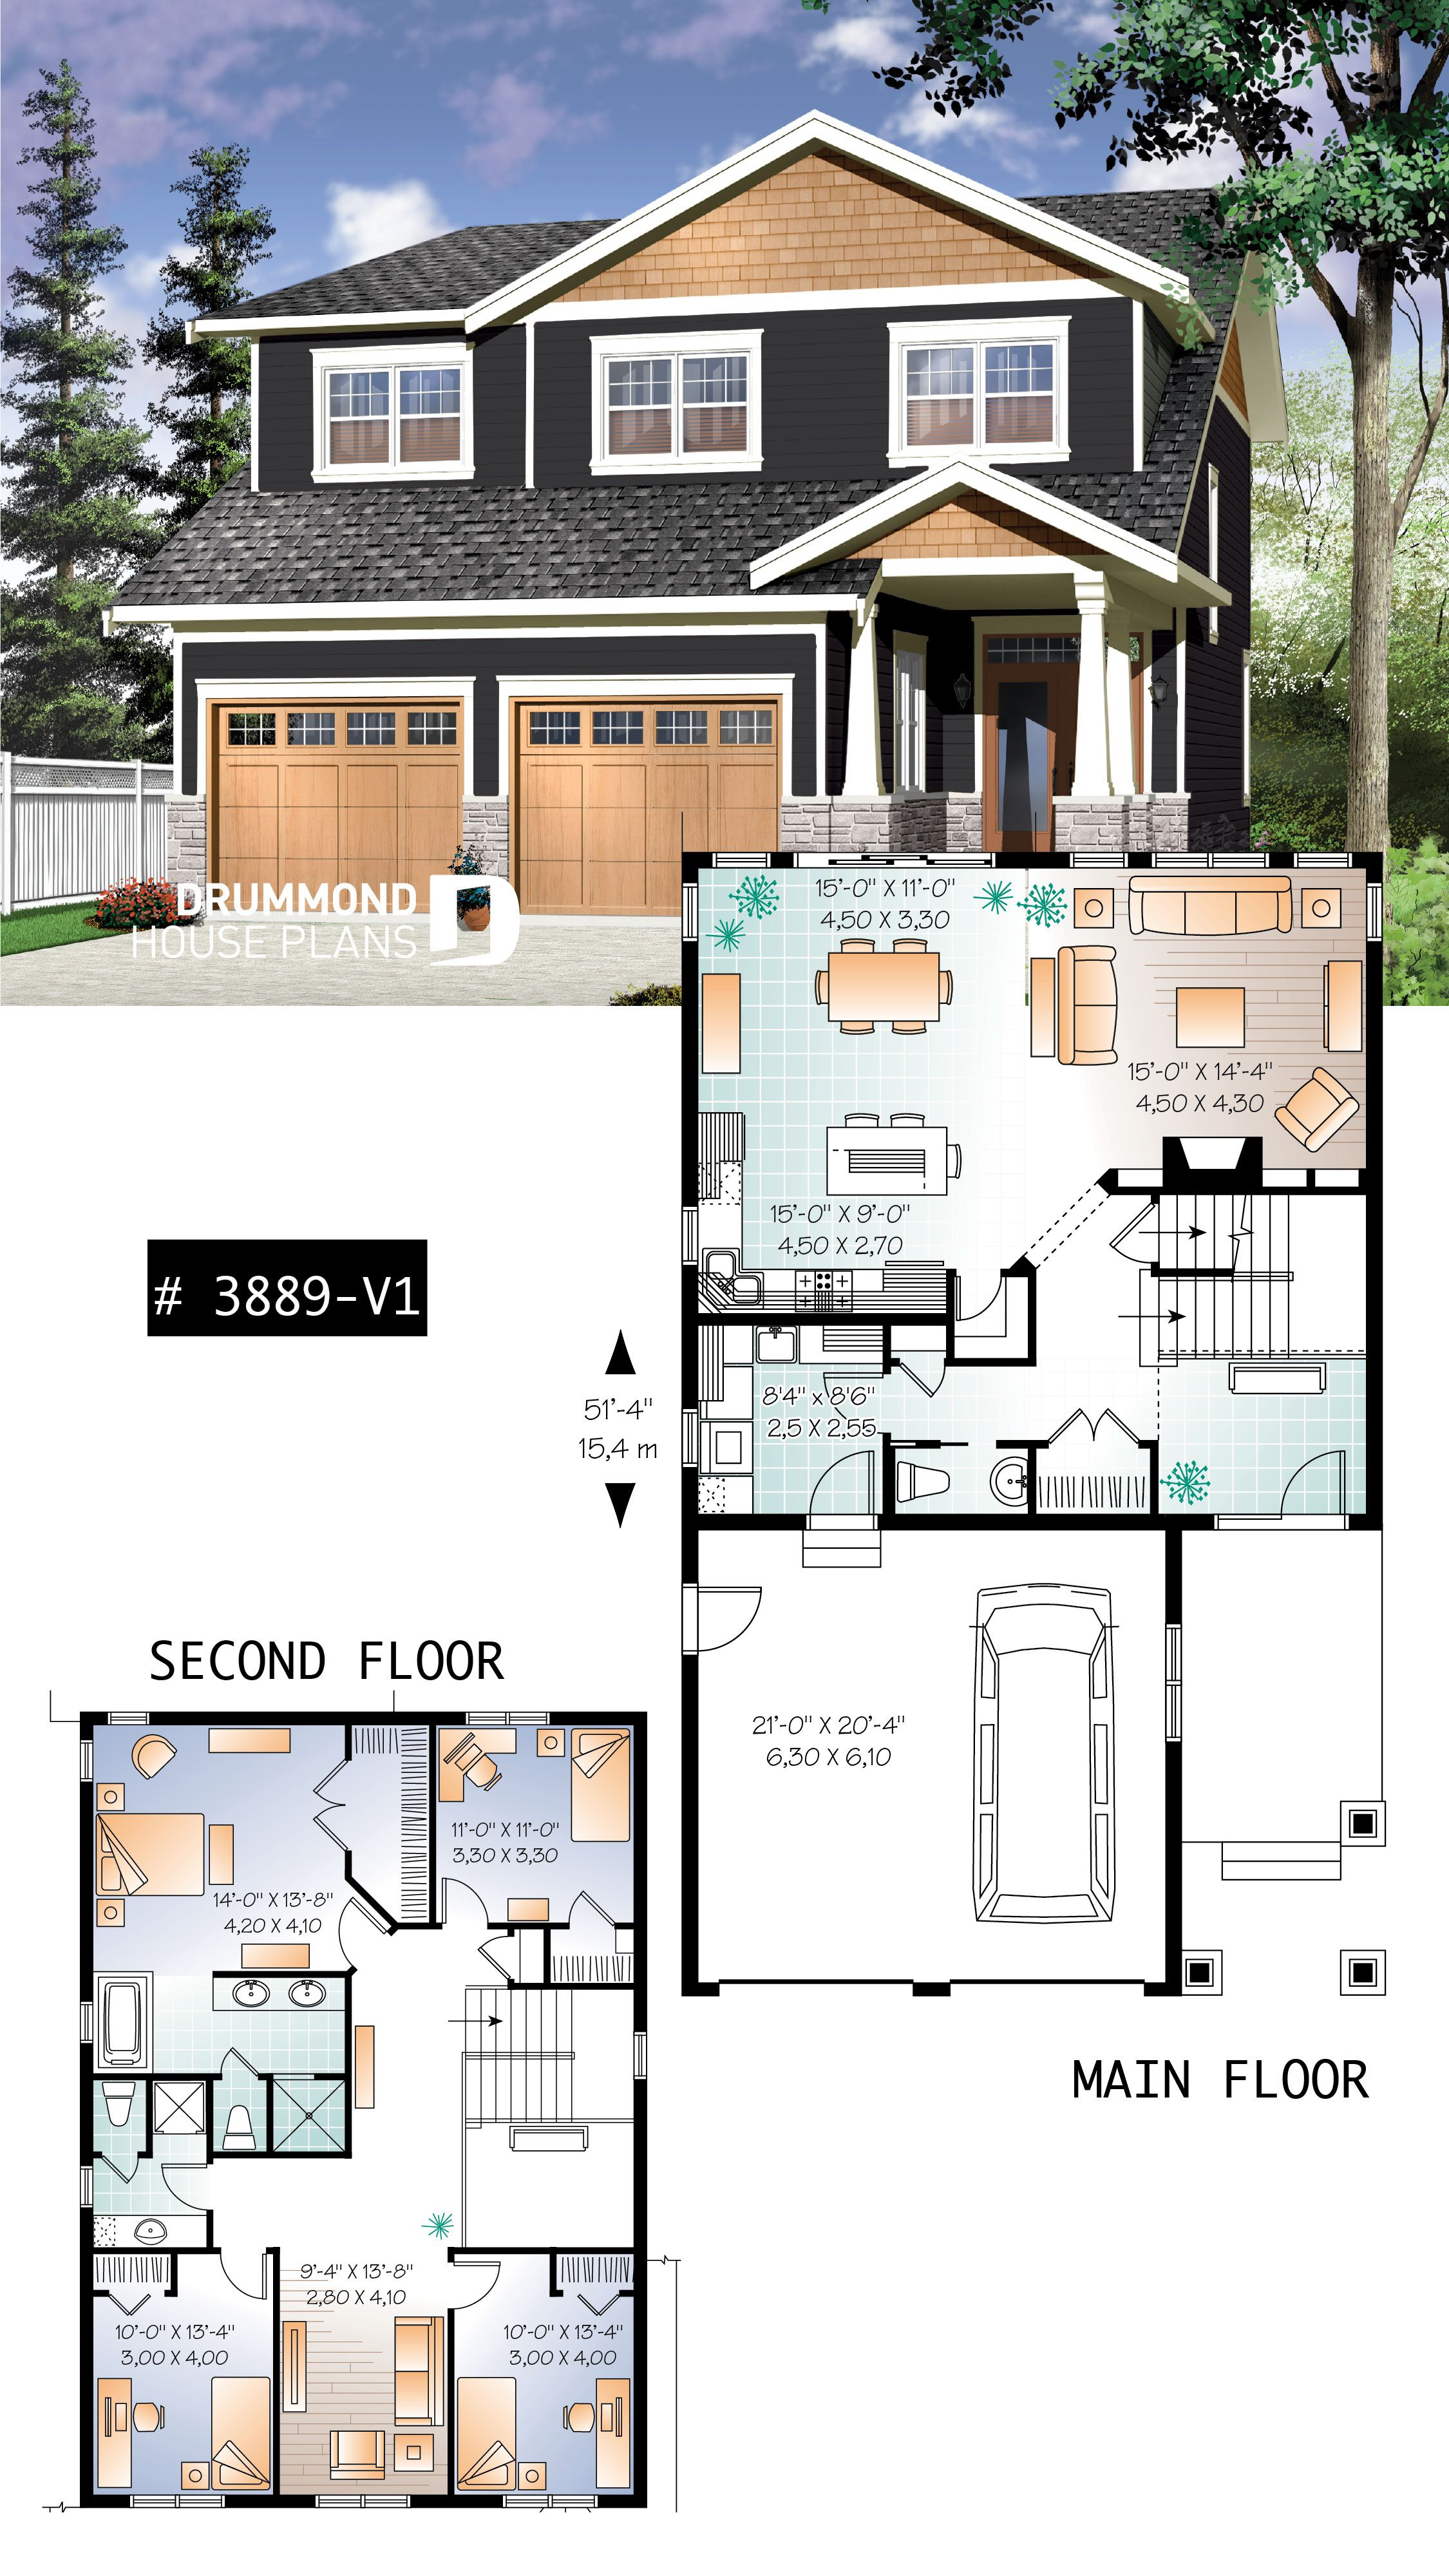 Discover The Plan 3889 V1 Addison 2 Which Will Please You For Its 5 4 Bedrooms And For Its Craftsman Northwest Styles House Blueprints Craftsman House Plans Sims House Design